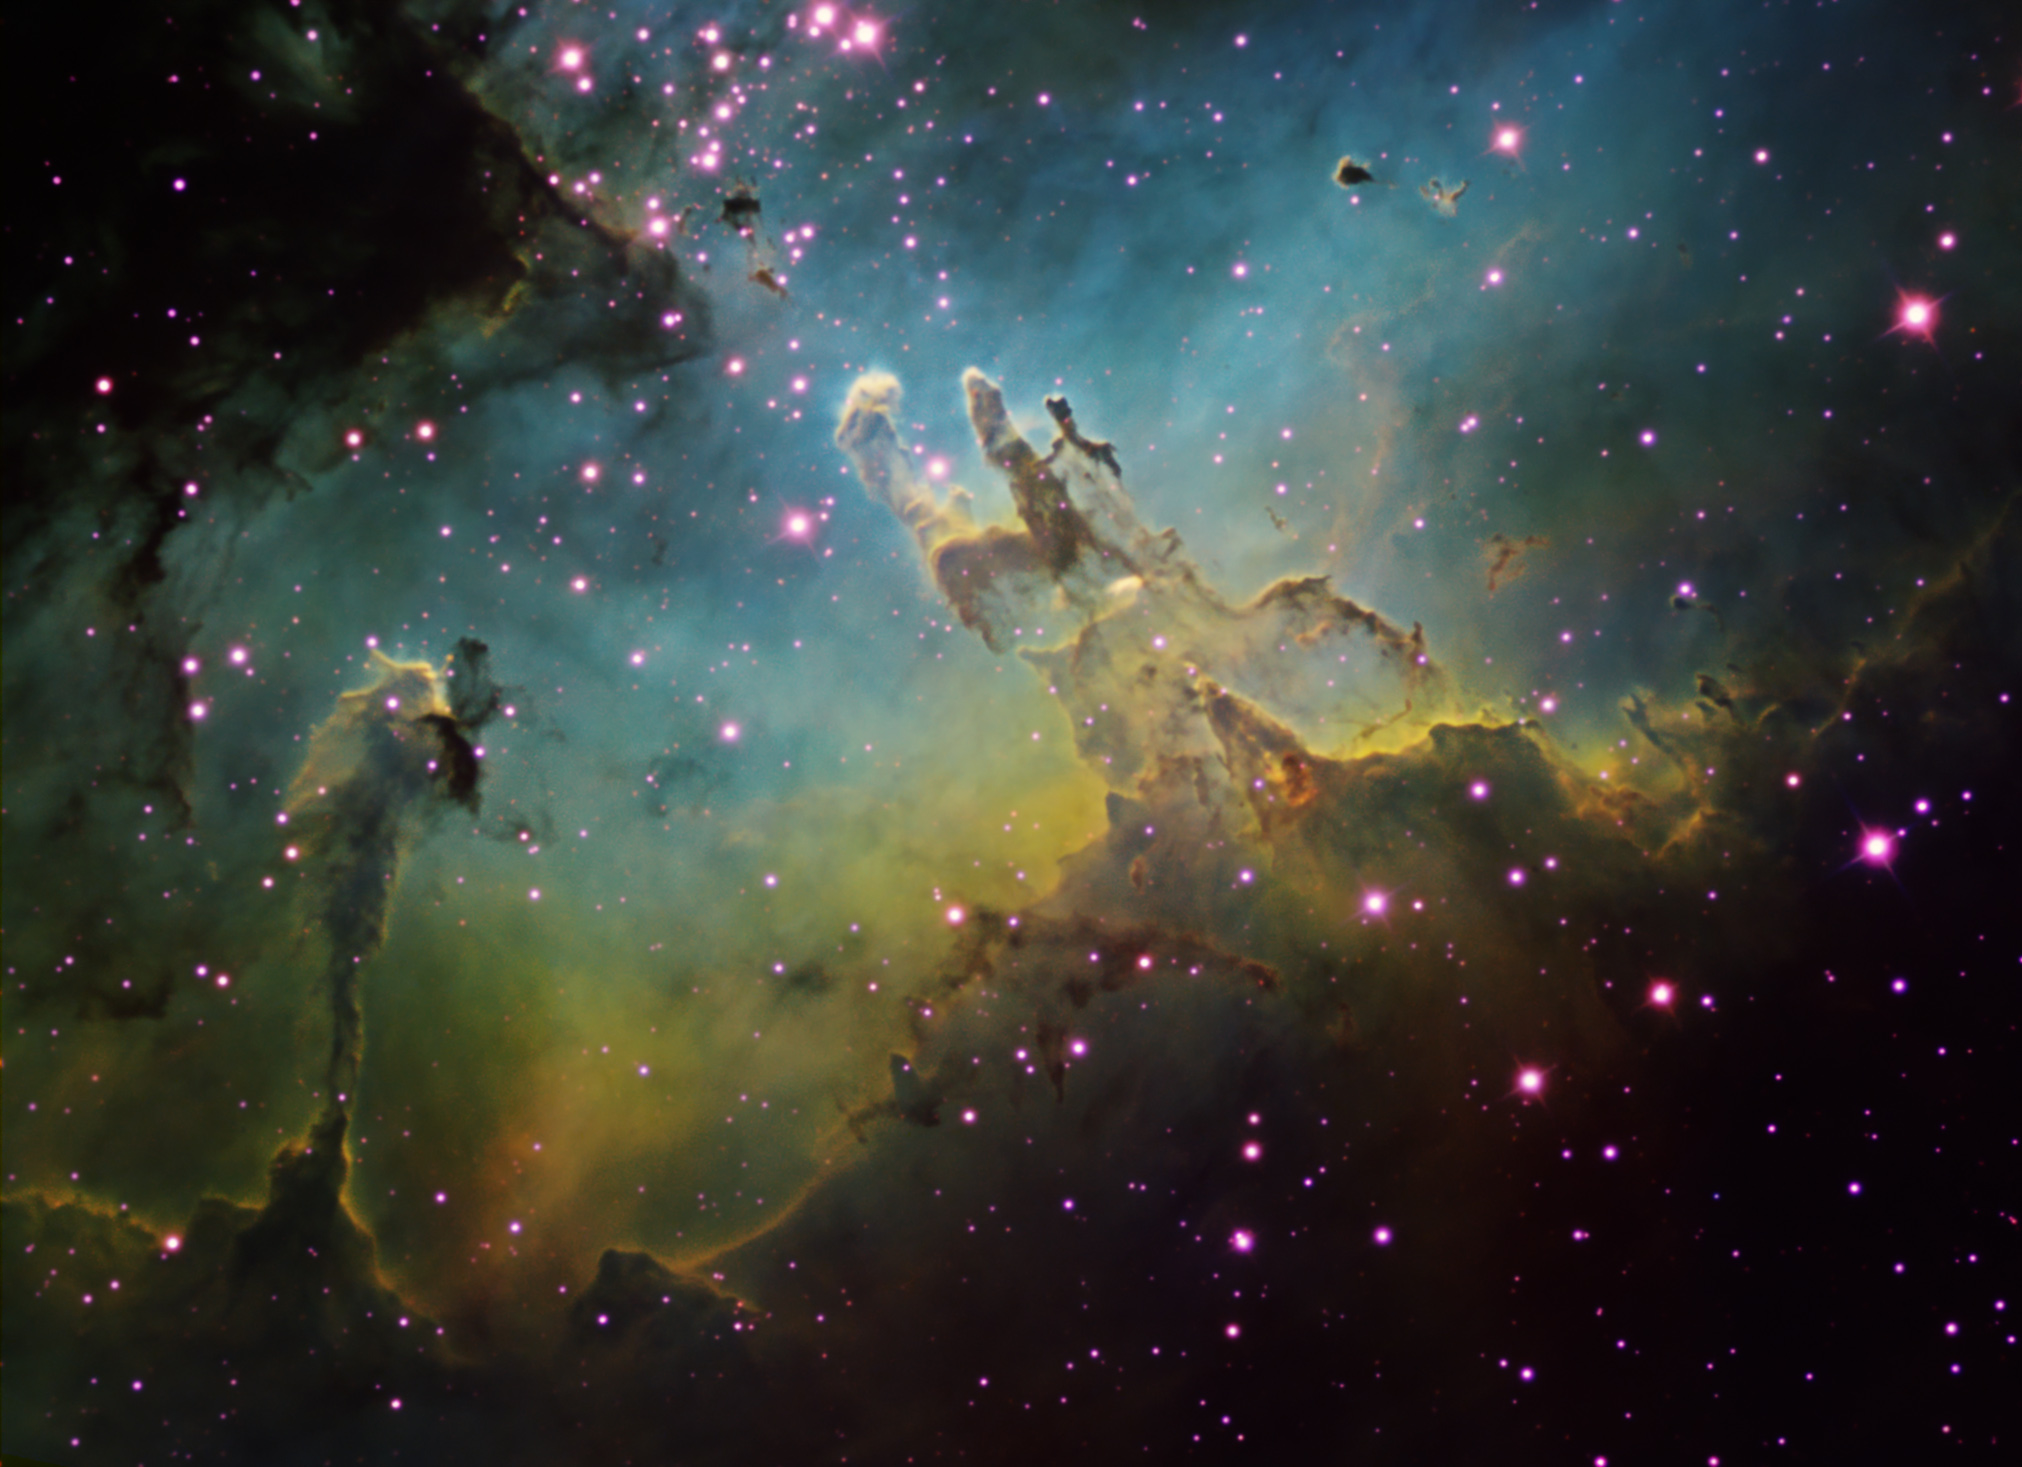 hubble wallpapers high resolution - photo #28